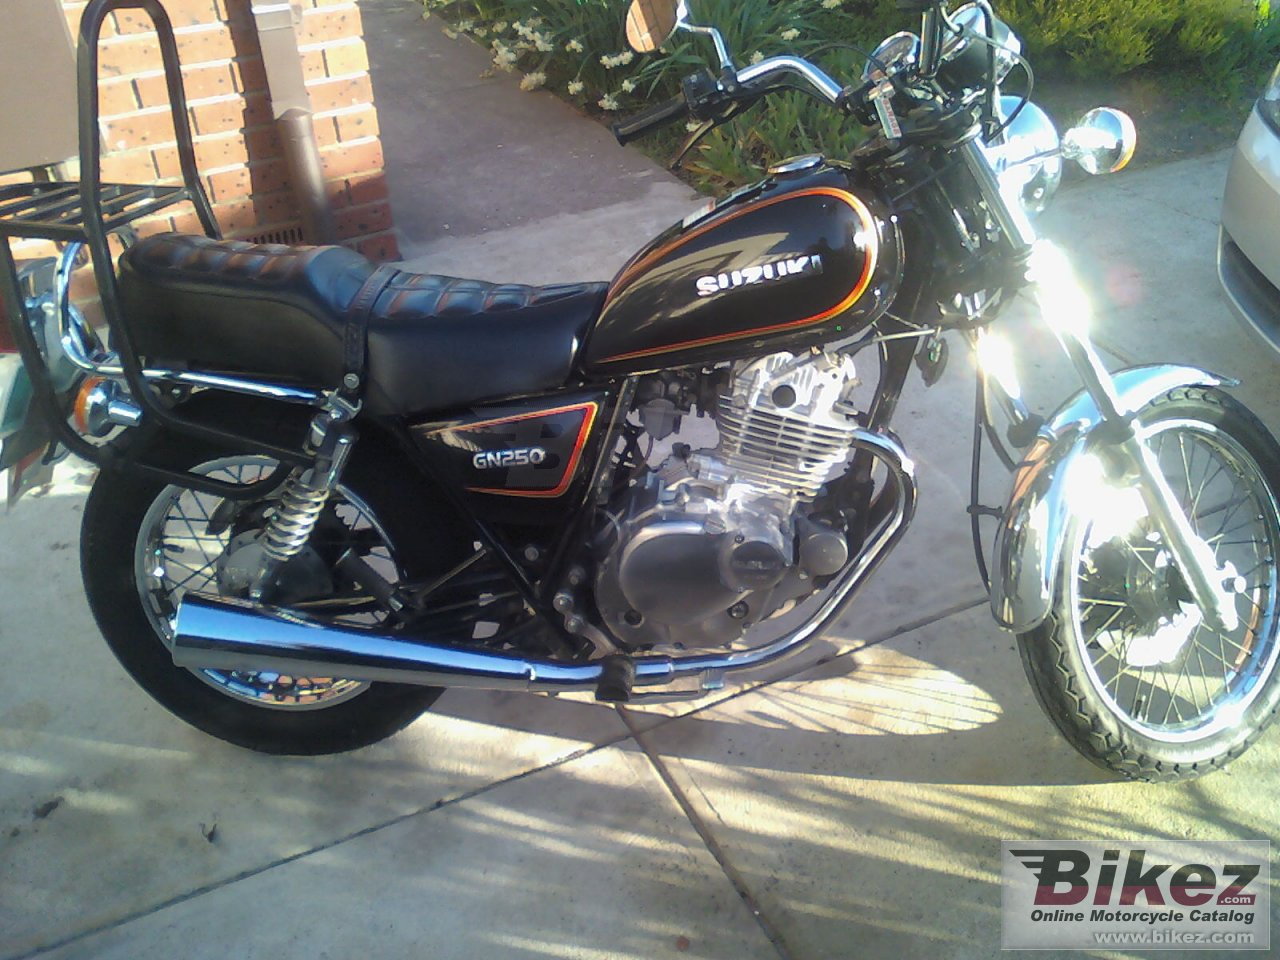 Big  gn 250 e picture and wallpaper from Bikez.com